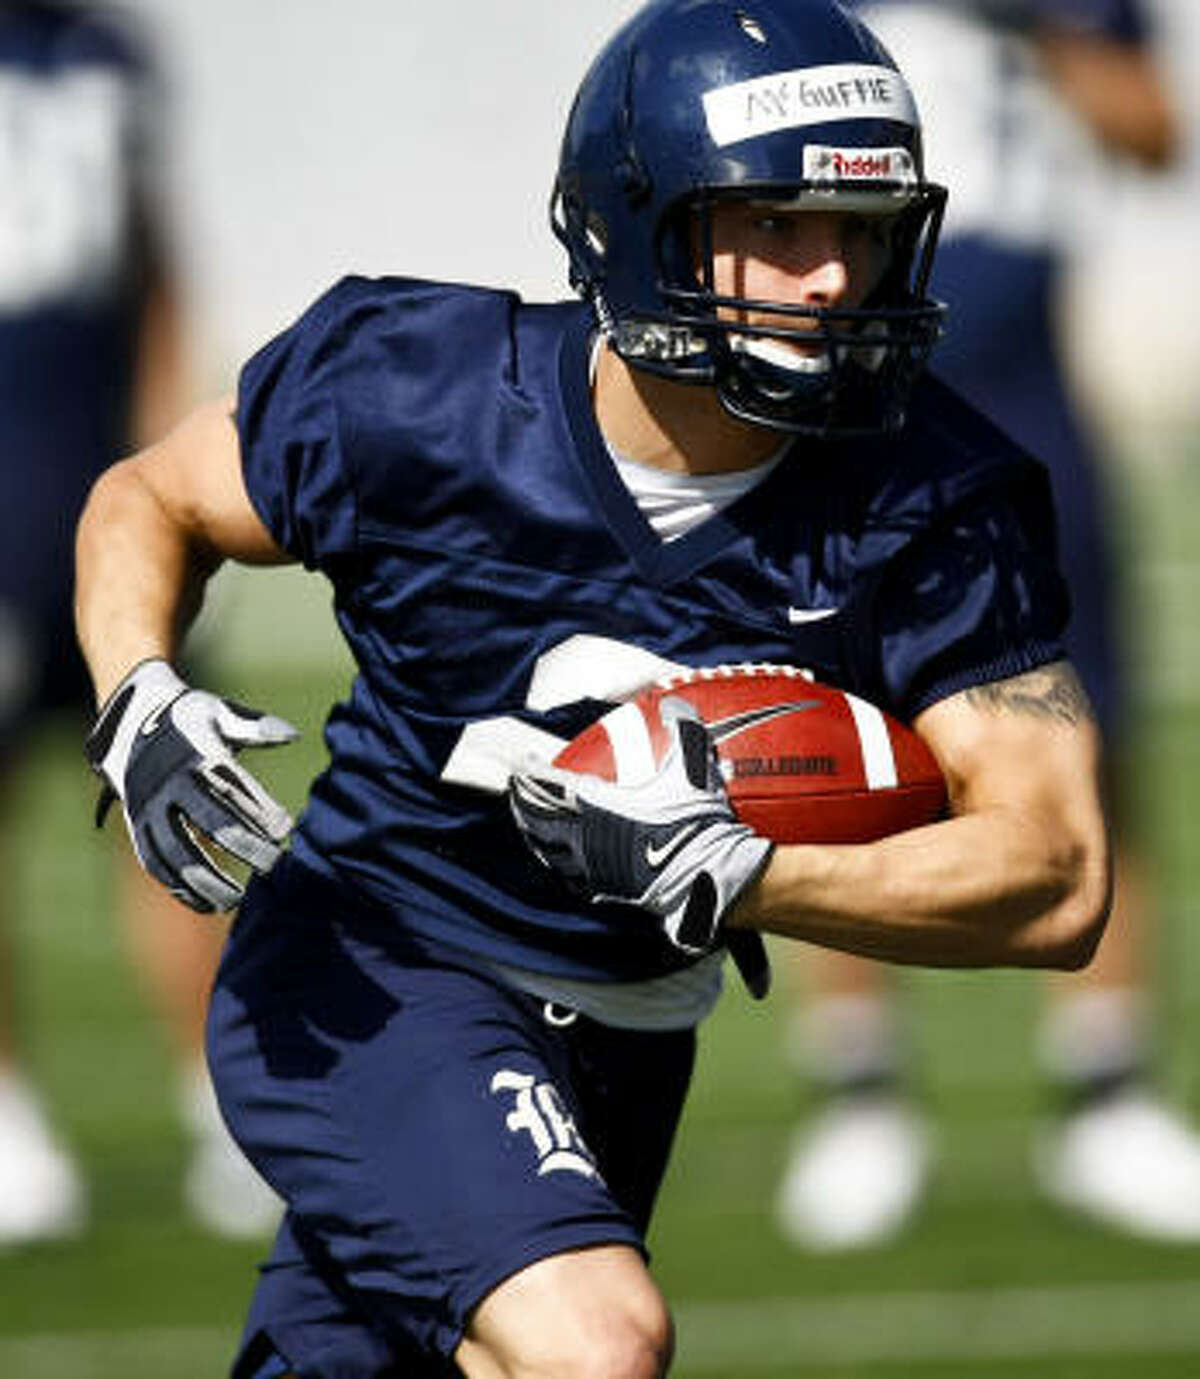 Sam McGuffie, shown here during last year's spring practices, has impressed this spring.